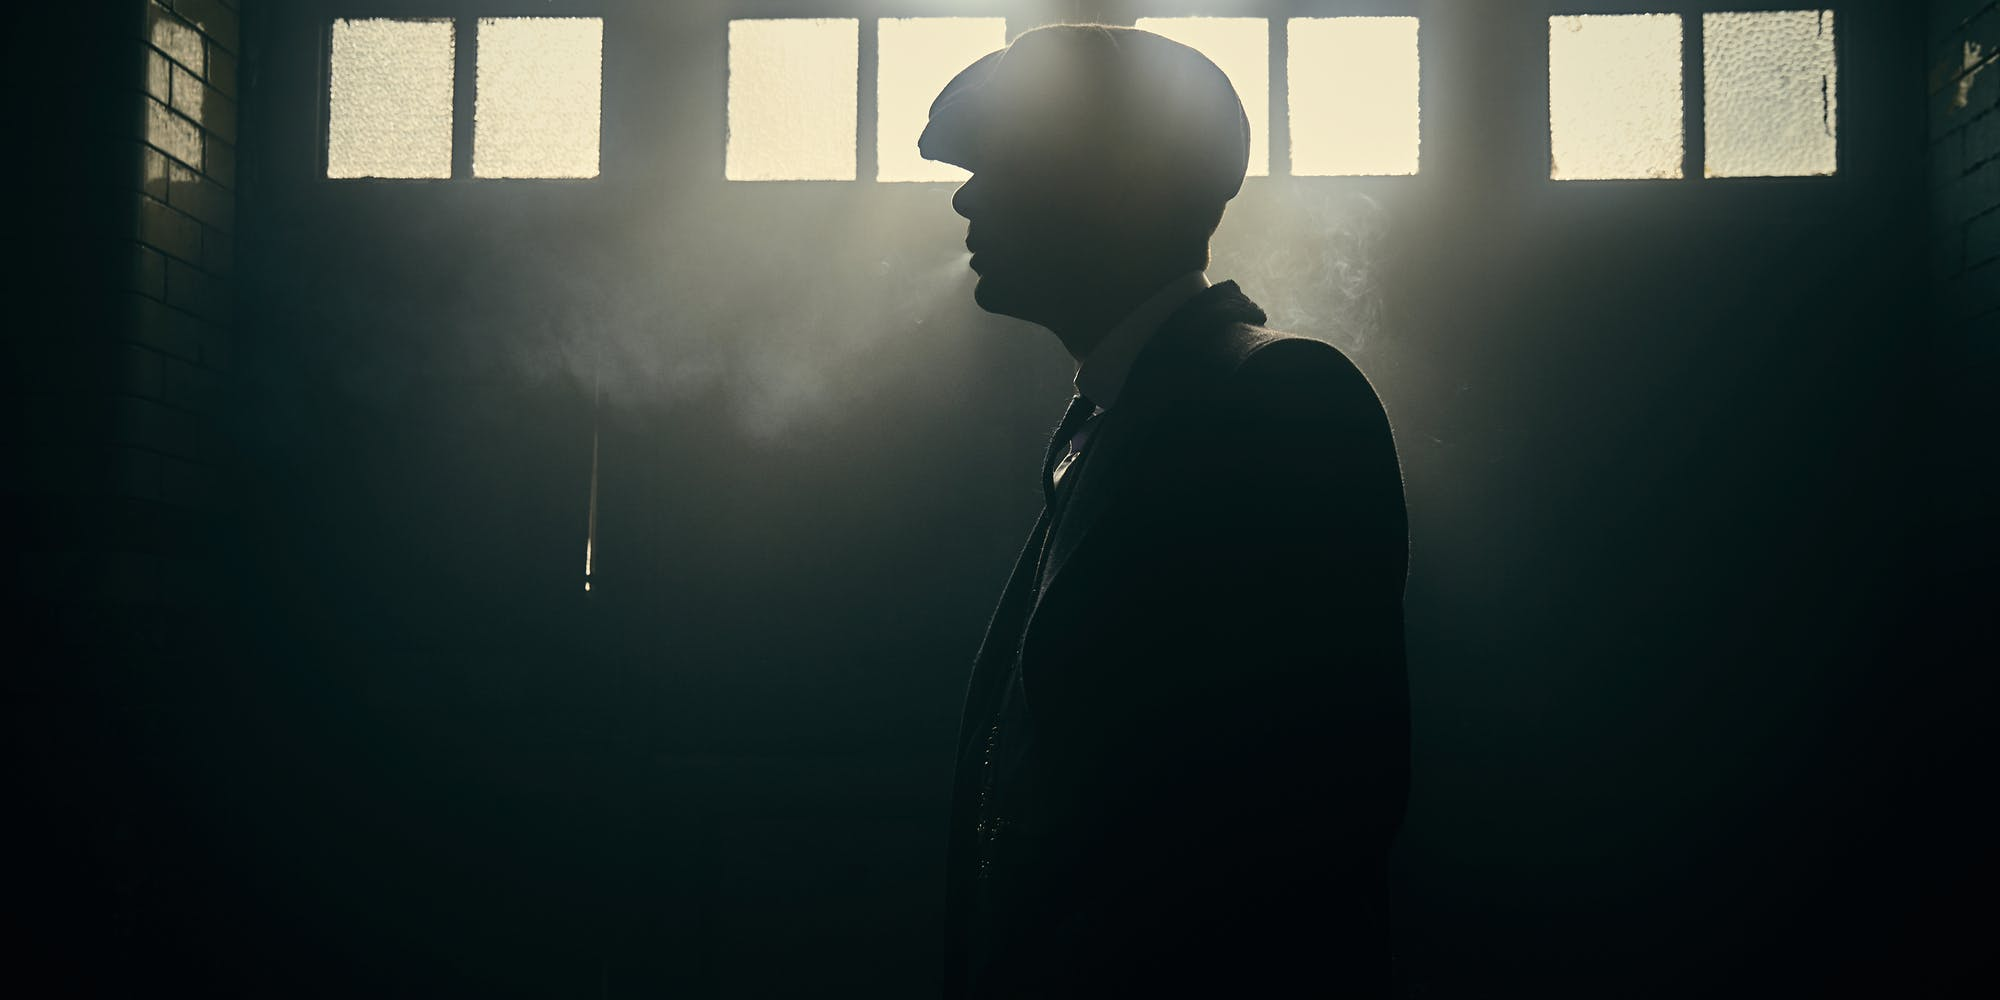 peaky-blinders-season-4-brings-the-past-back-with-a-vengeance.jpg